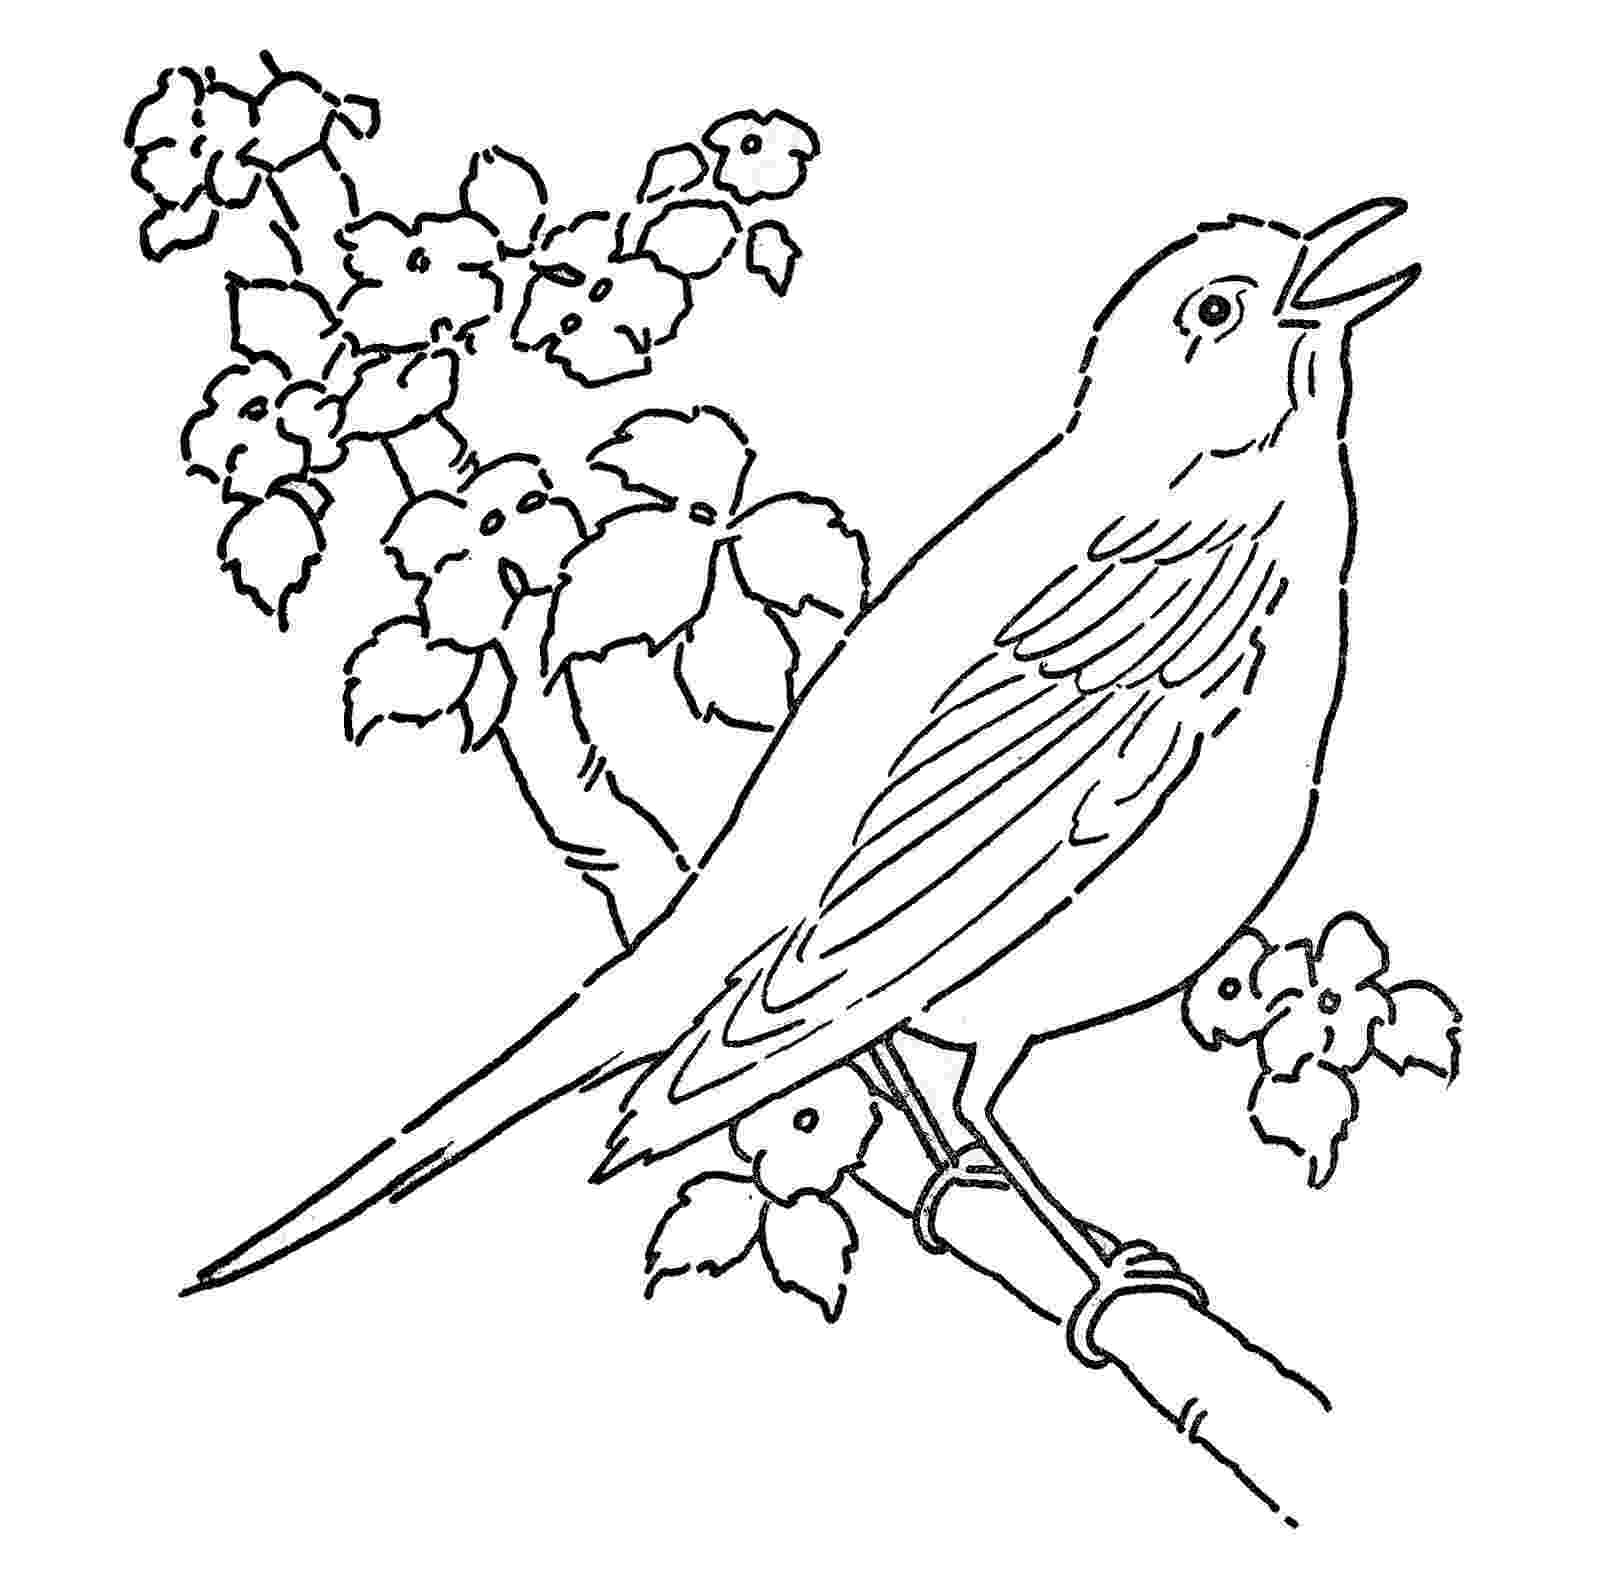 bird coloring images birds coloring pages coloring images bird